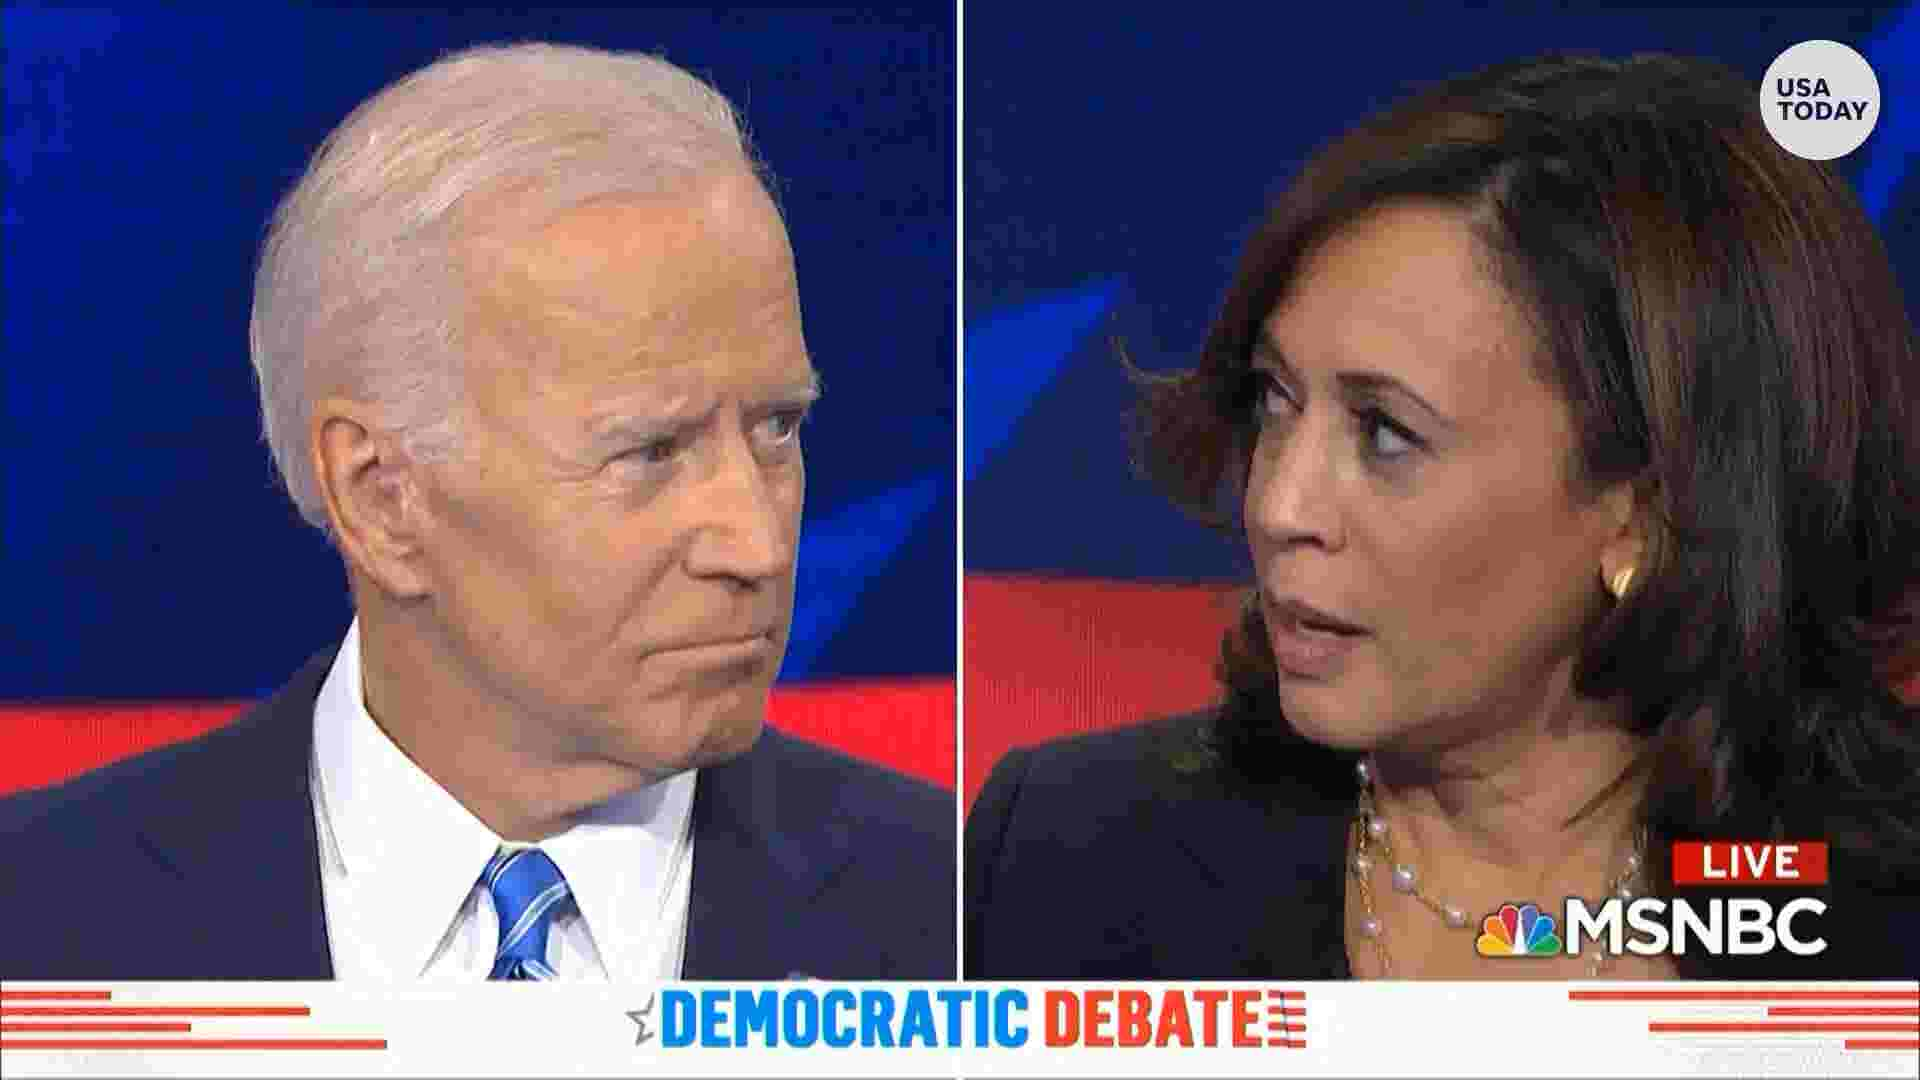 Democrats Are Spotlighting Big >> Democratic Debate 2019 Night Two Defined By Direct Exchanges But Harris And Biden Most